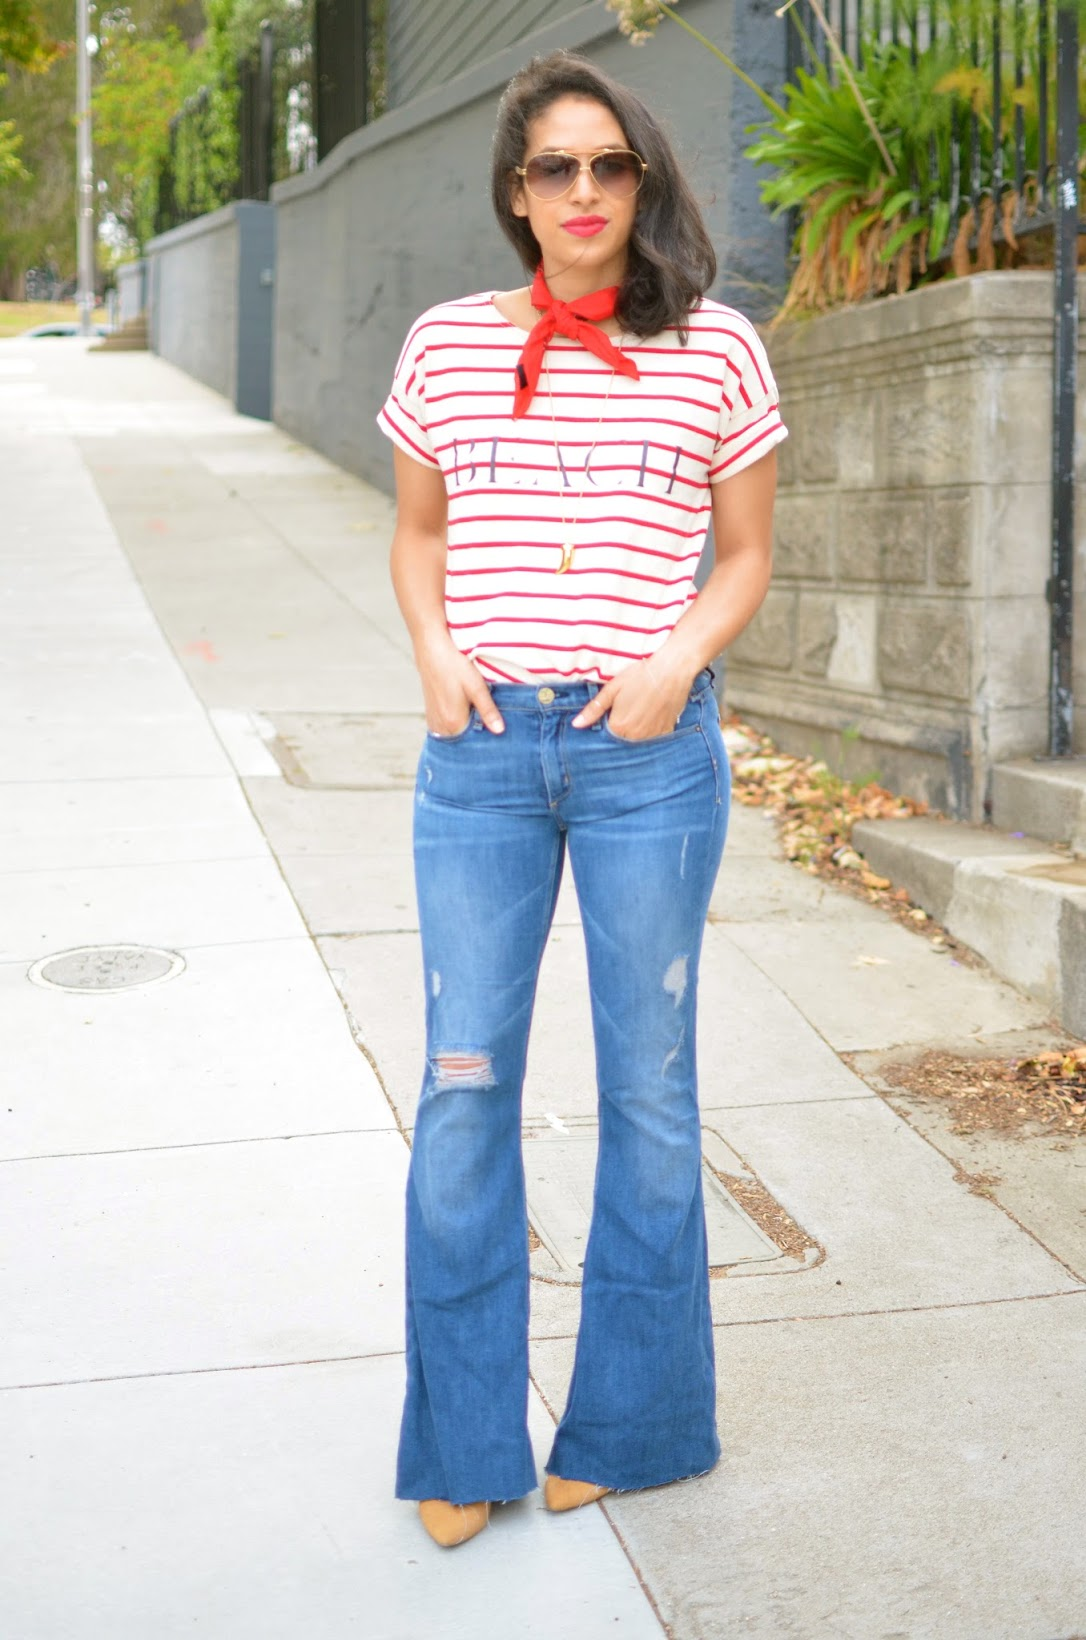 striped top, red and white brenton stripe top, McGuire flares, Majorelle flares, McGuire Majorelle flares, classic french look, bandana trend, fresh blowout, curly to straight hair